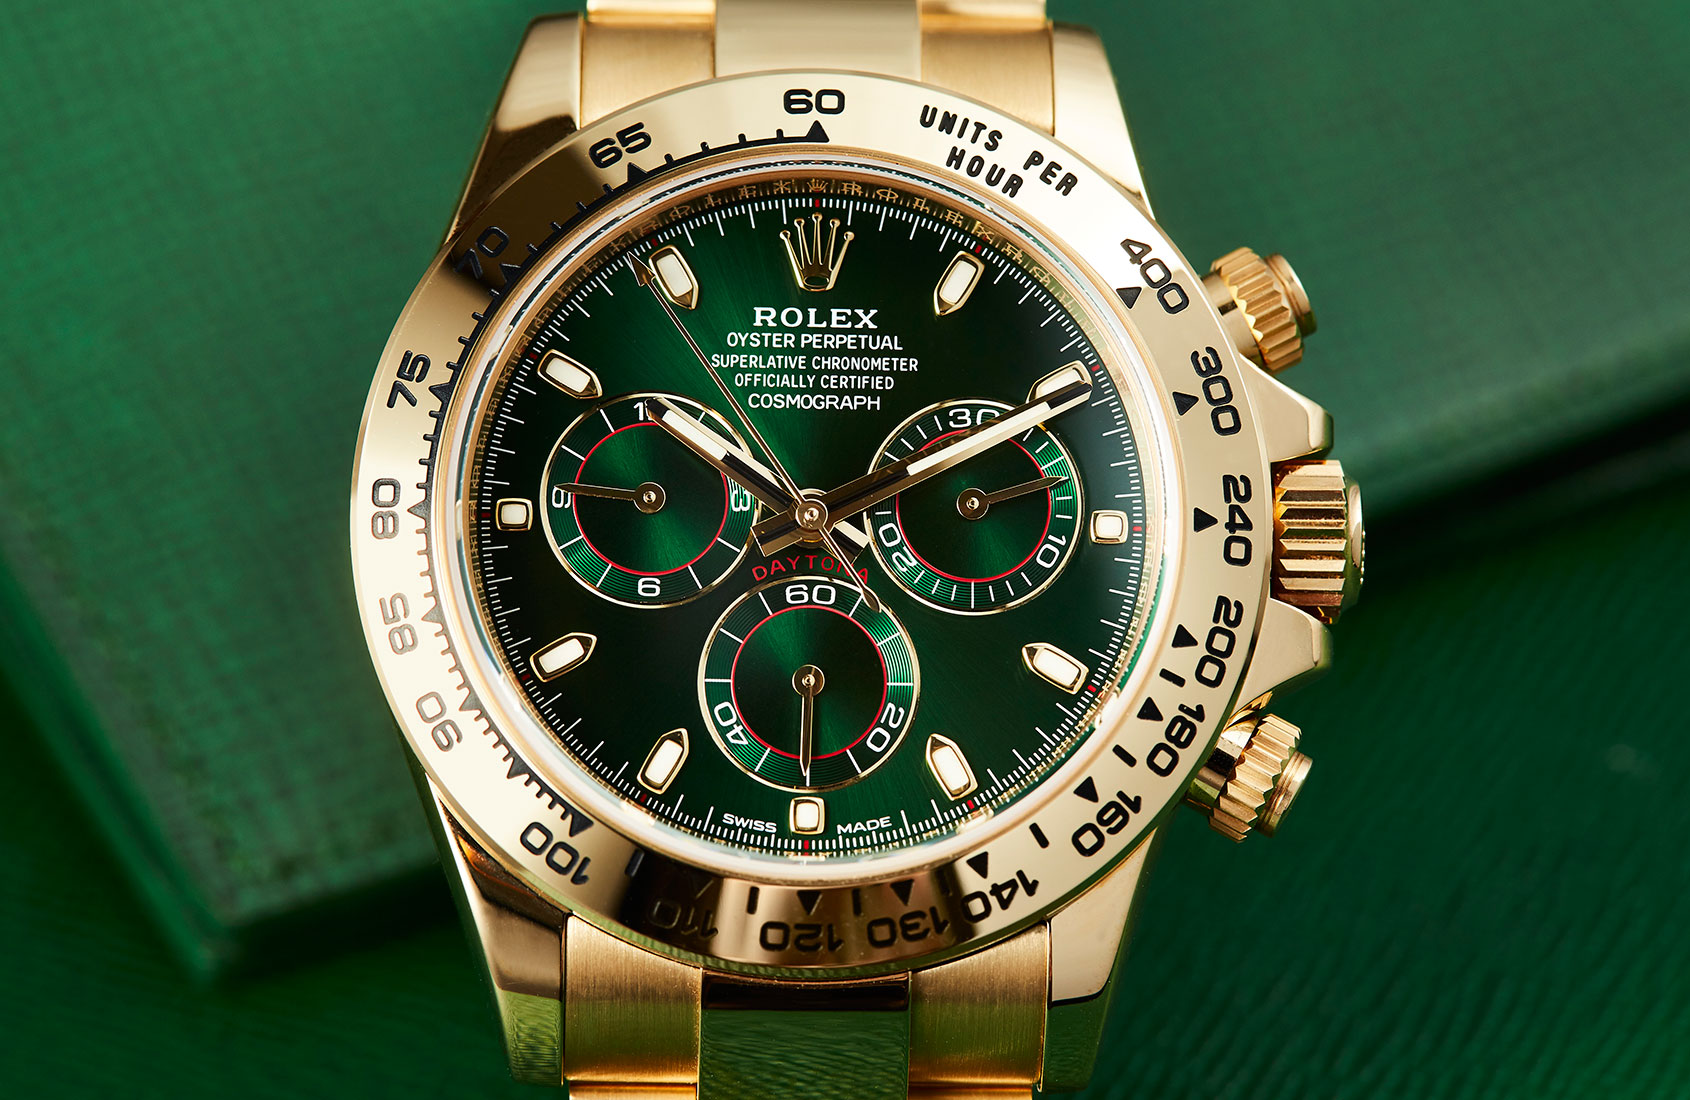 https://timeandtidewatches.com/wp-content/uploads/2016/10/Rolex-Daytona-yellow-gold-green-dial-116508-3.jpg